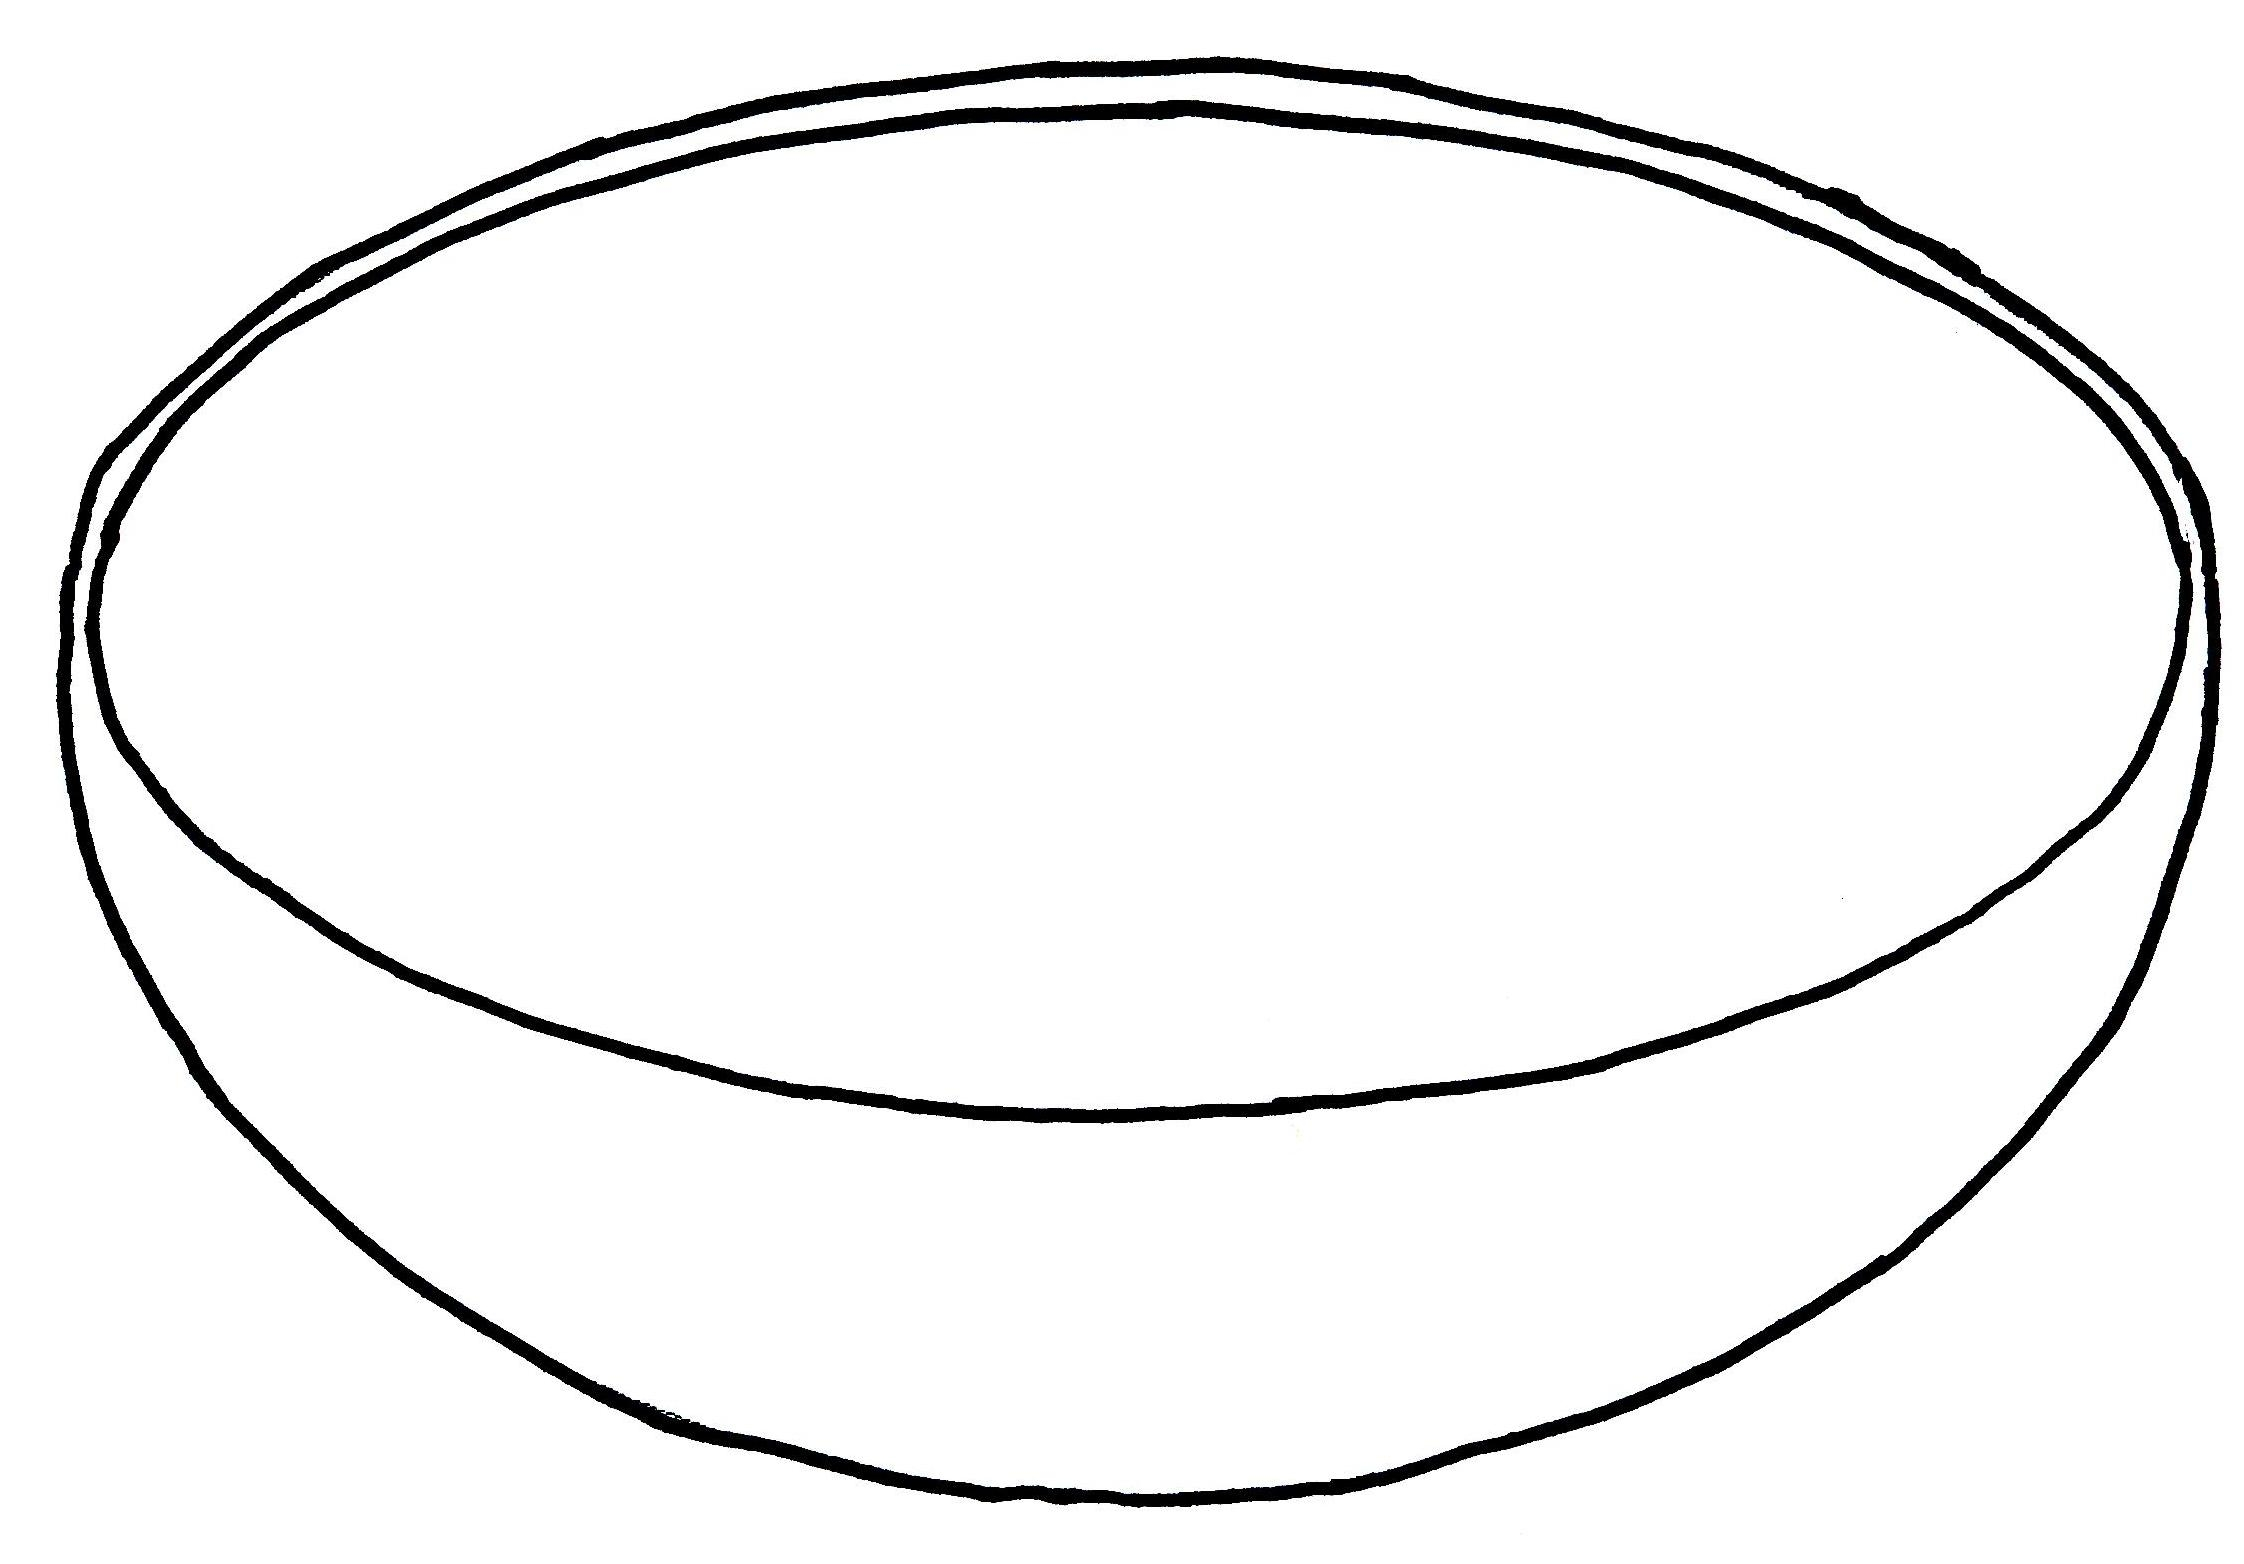 Bowl coloring page clipart best for Empty fish bowl coloring page